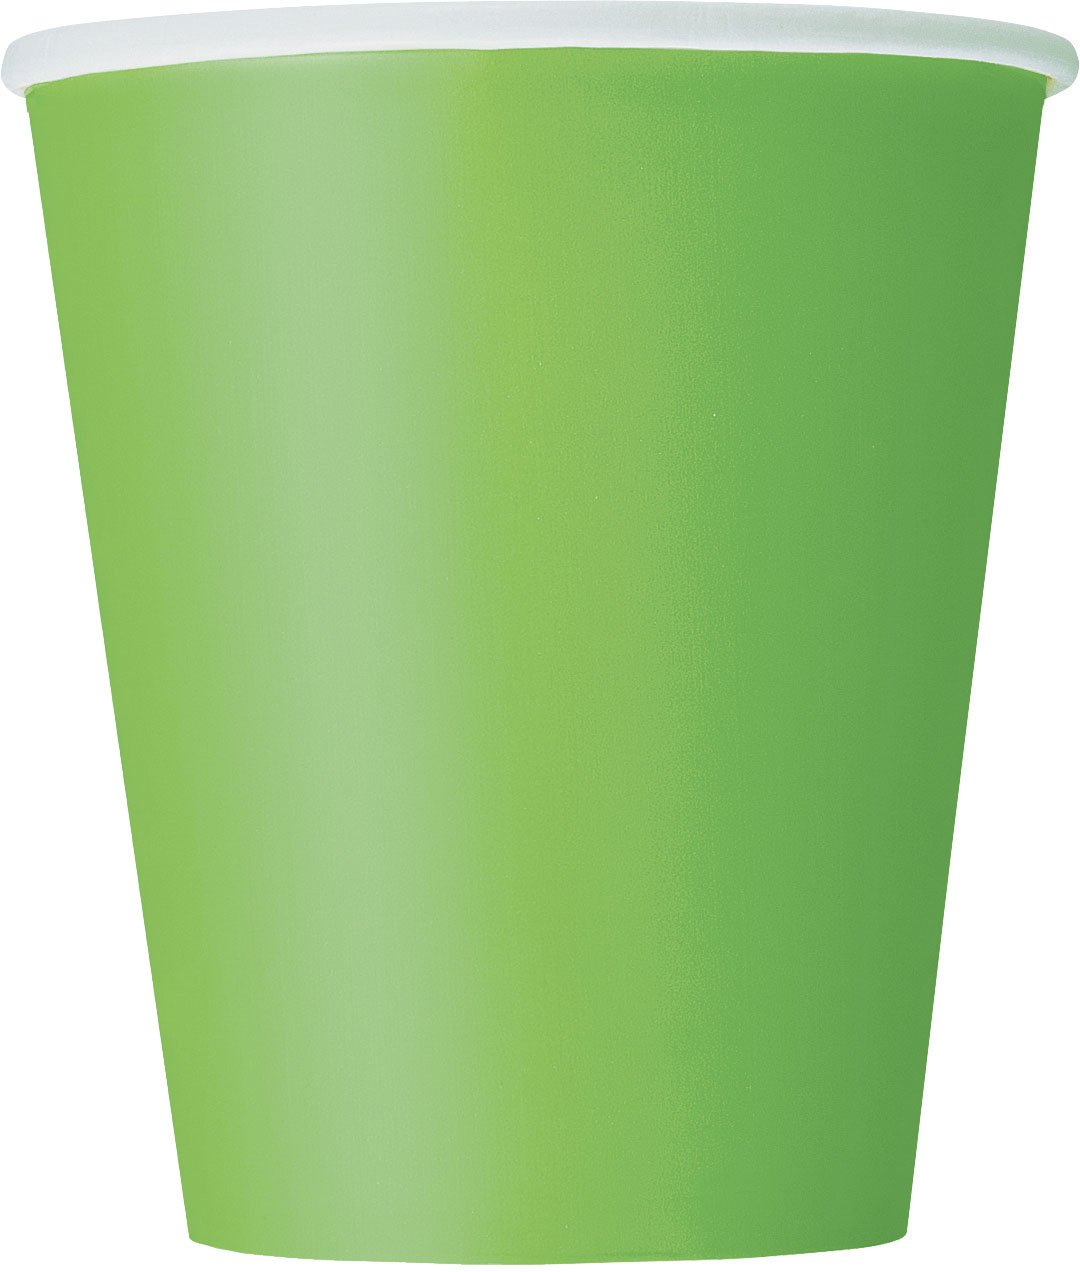 9oz Lime Green Paper Cups, 14ct